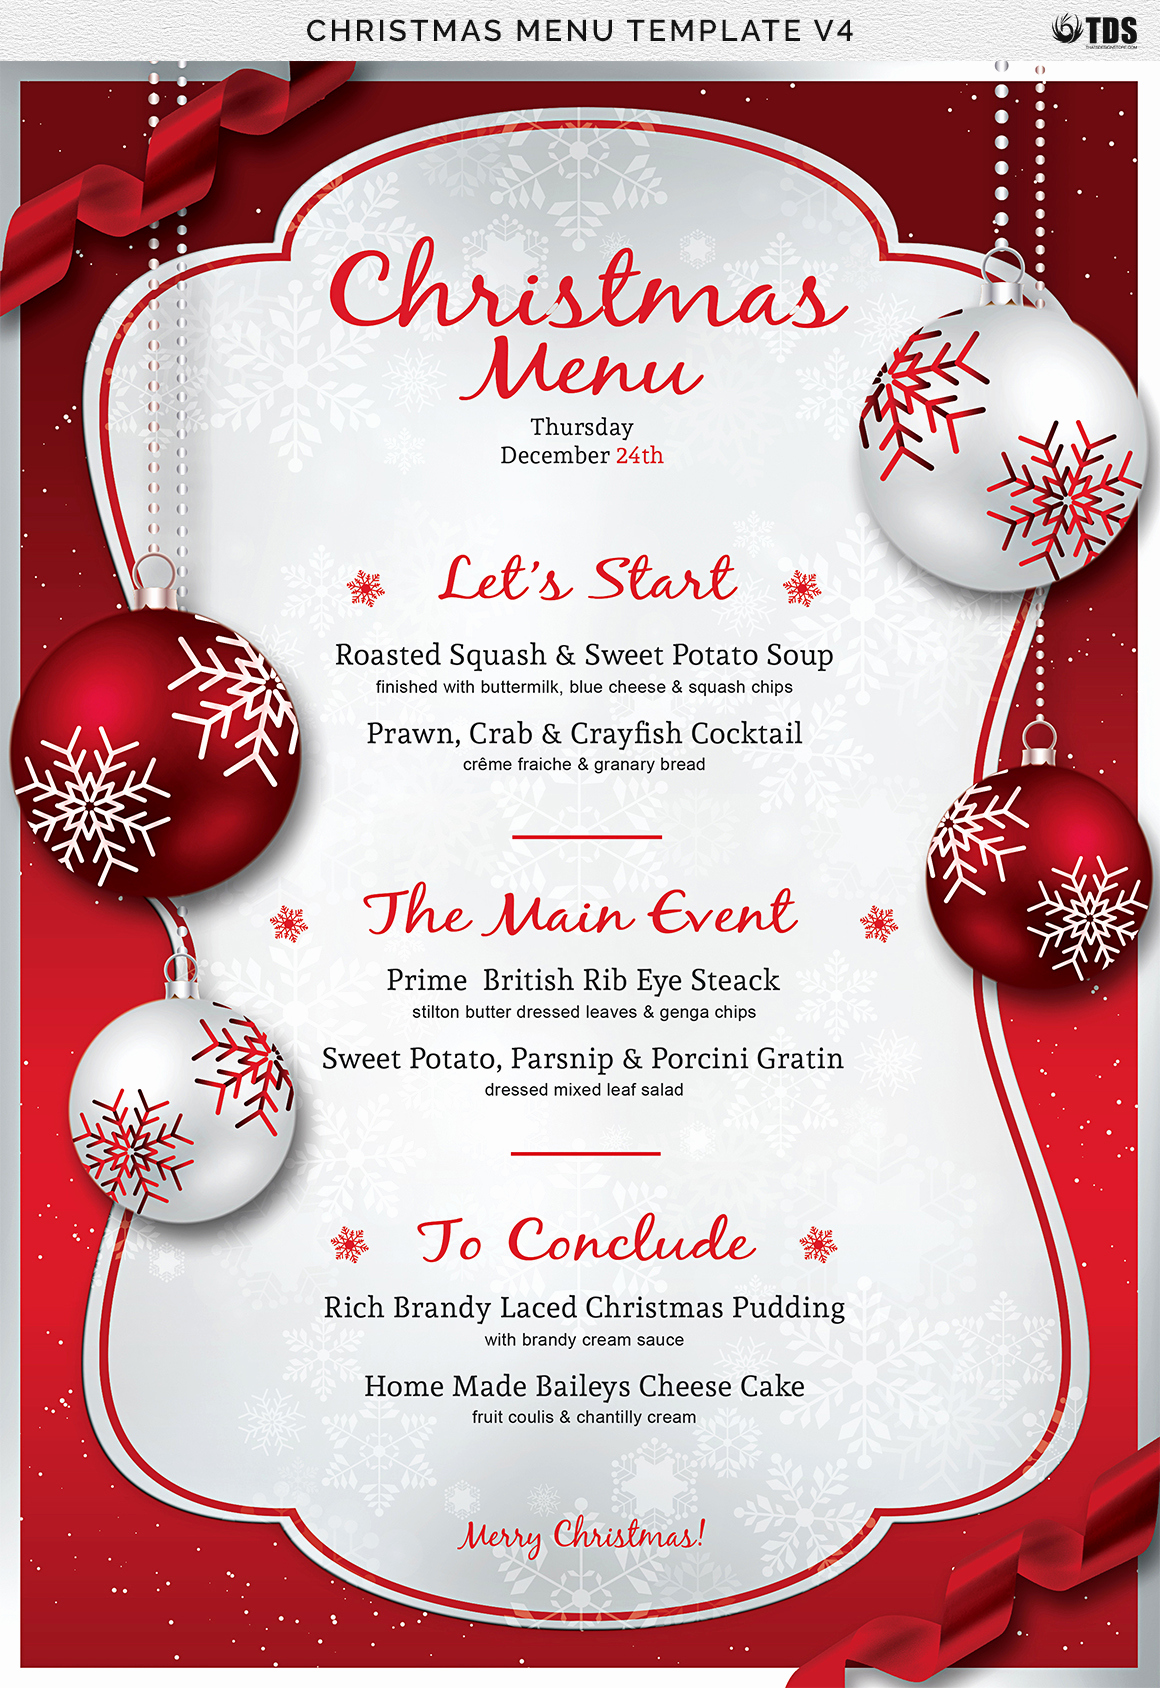 Free Menu Template Word Inspirational Christmas Menu Template V4